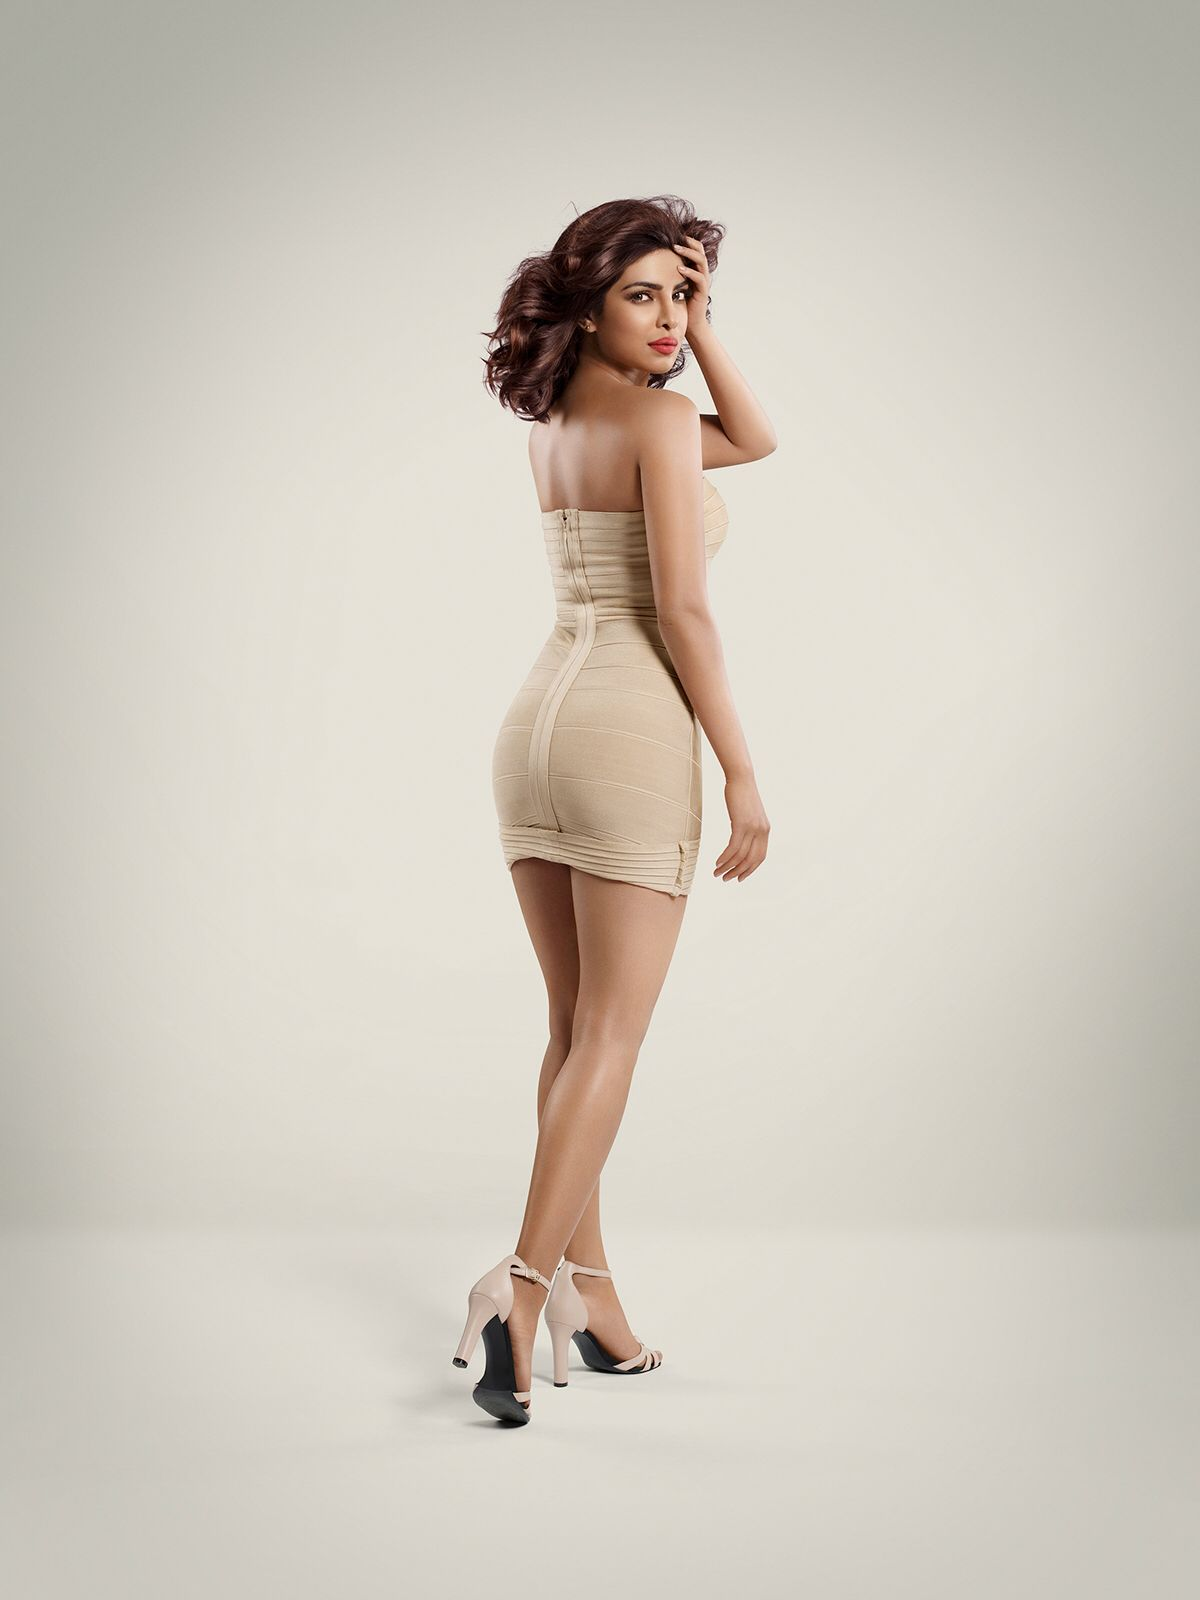 Priyanka chopra sexy ass